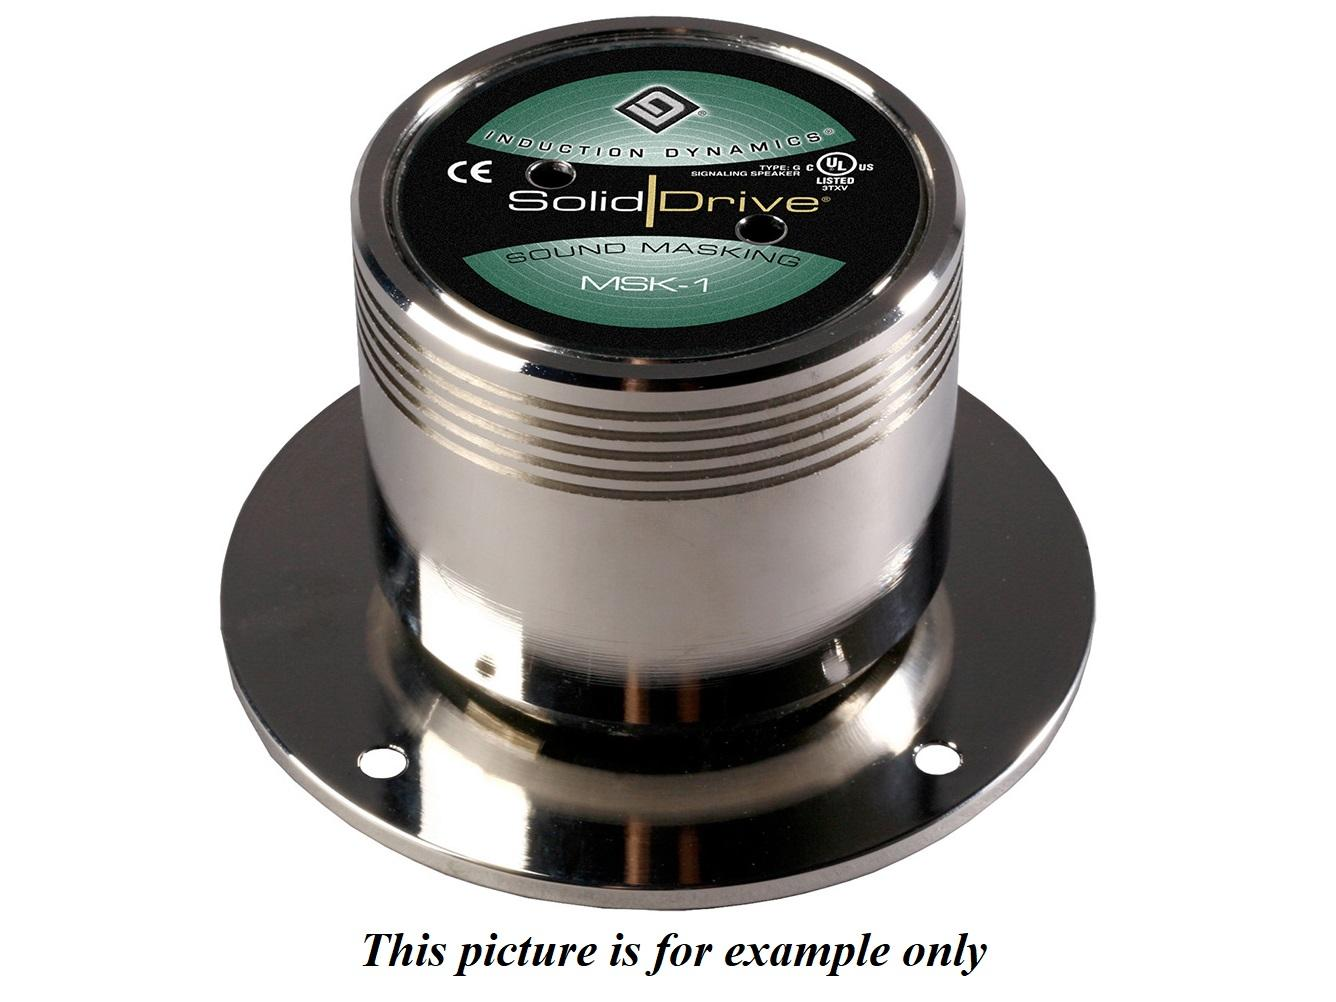 Soliddrive MSK-1SM Solidrive SOUND MASKING SURFACE MOUNT